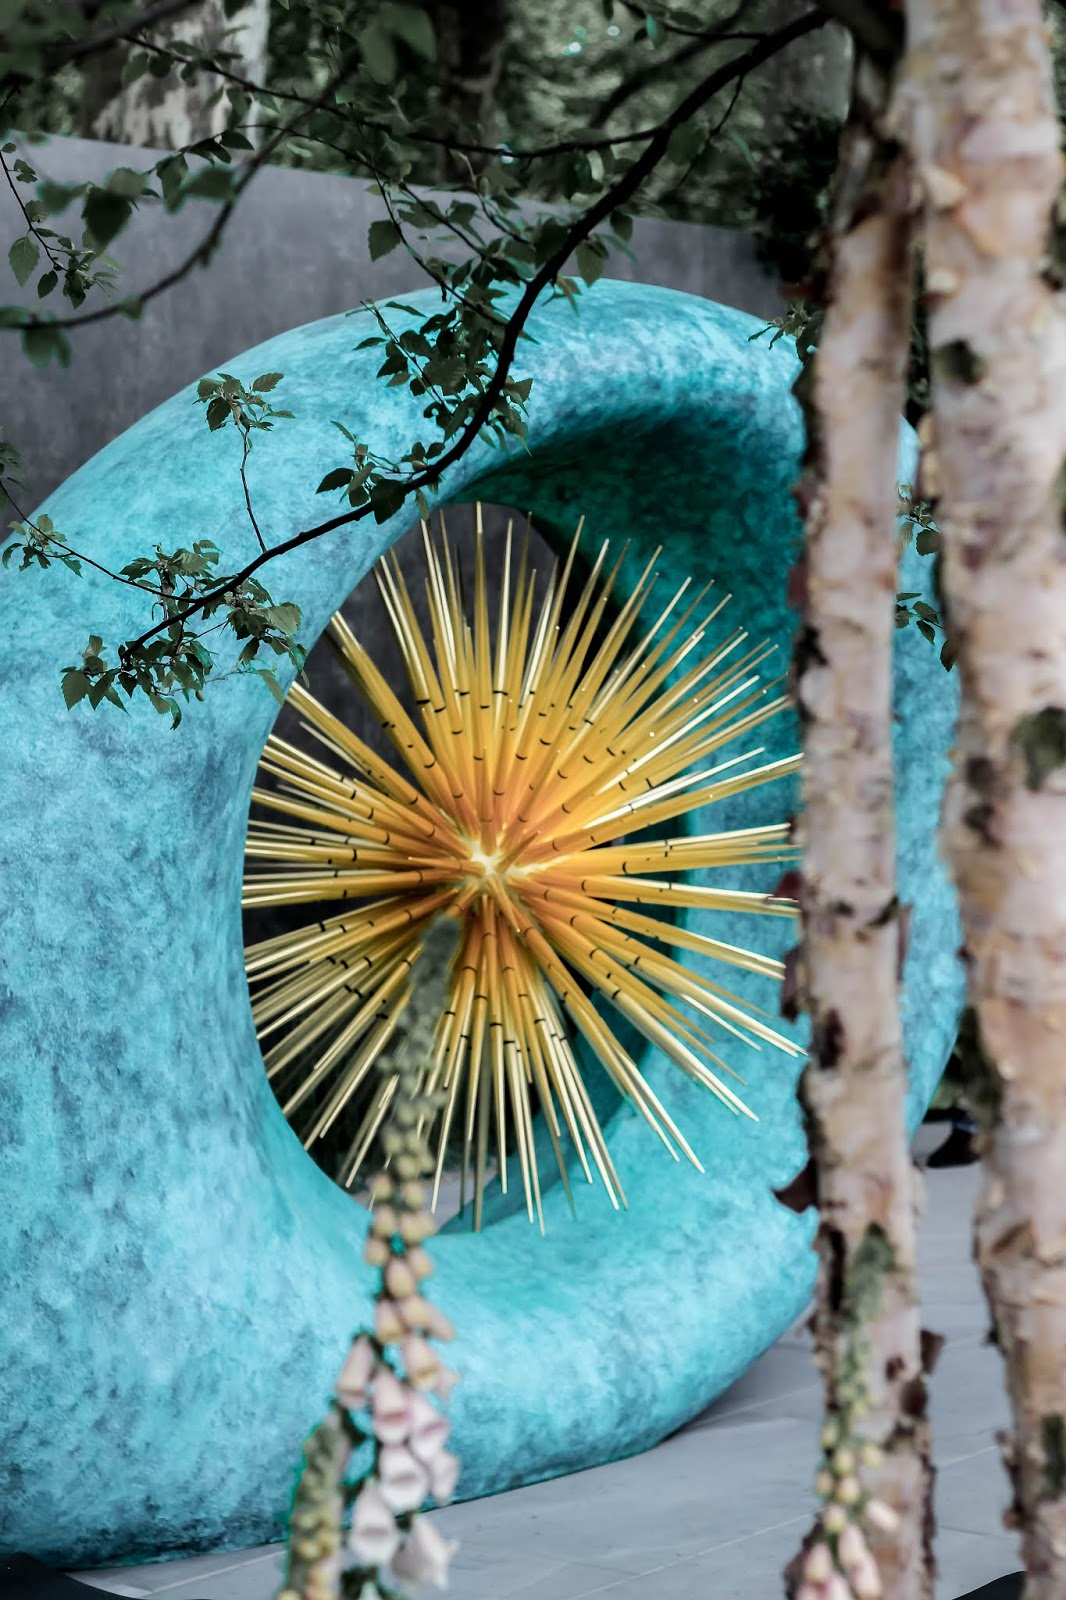 Chelsea Flower Show Turquoise and Gold Artwork Dabid Harber